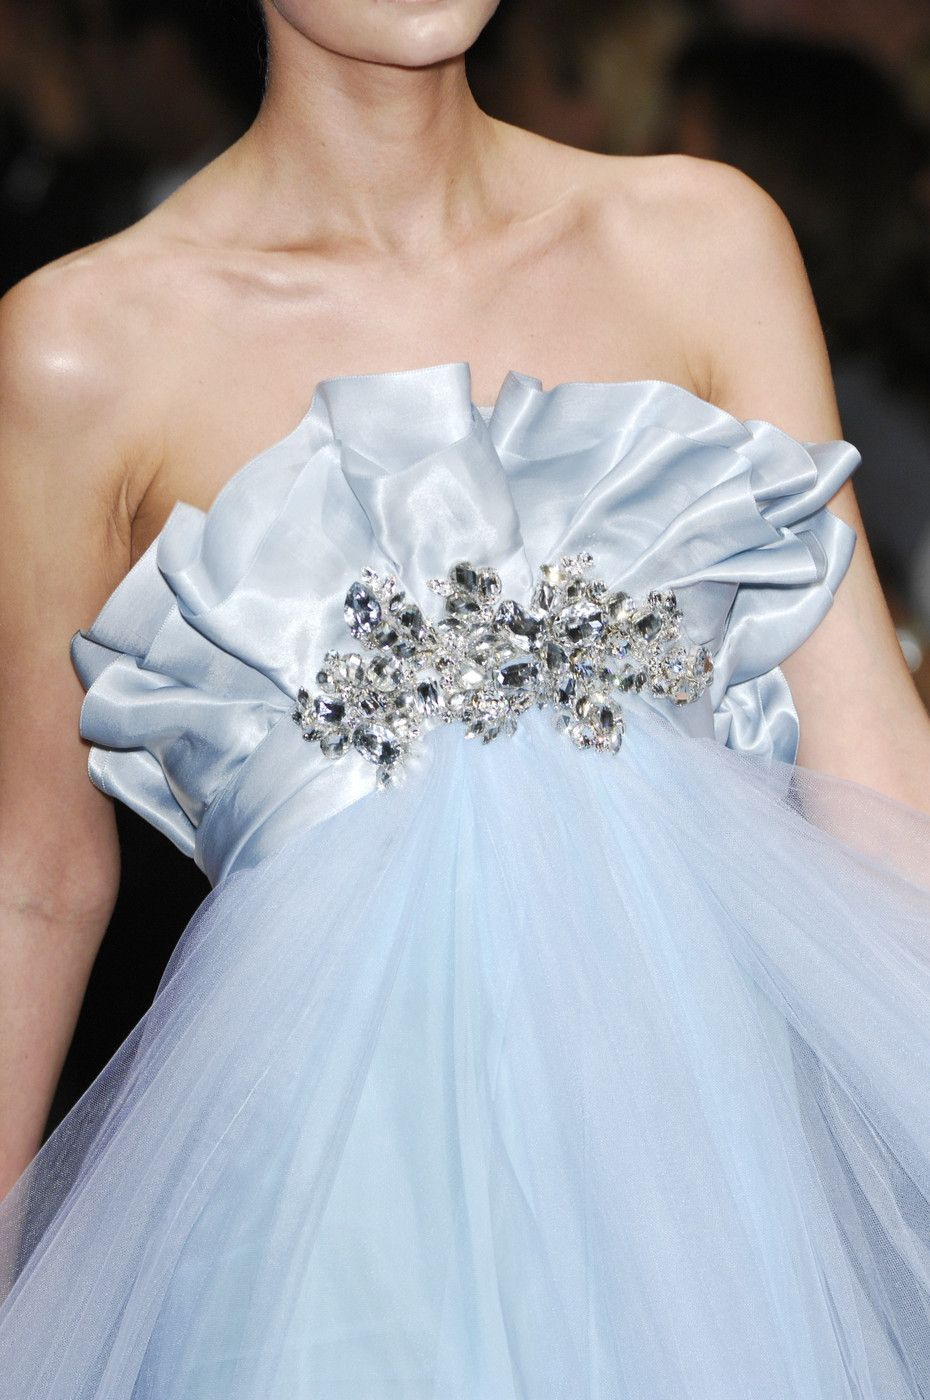 Elie Saab At Couture Spring 2008 Prom Dresses Uk Cheap Prom Dresses Uk Gorgeous Gowns [ 1400 x 930 Pixel ]